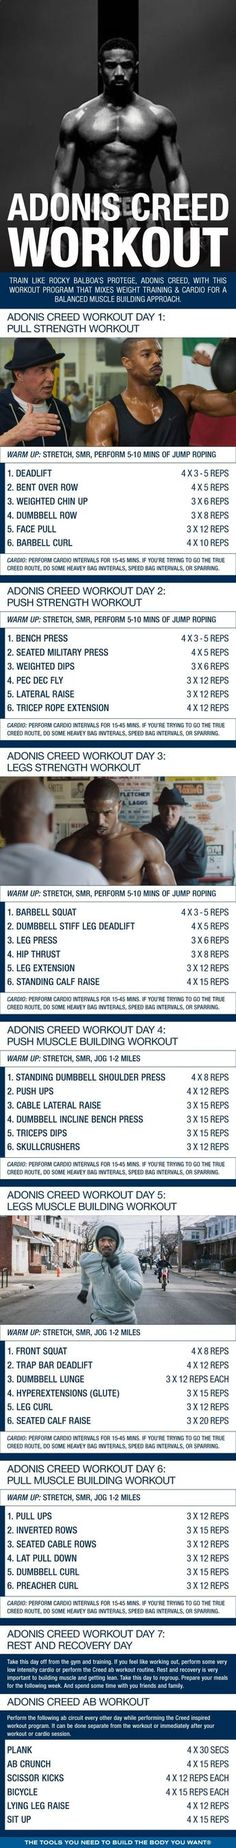 Adonis Creed Inspired Workout Shred Fat like a Contender is part of Workout training programs - Train like Rocky Balboa's protege, Adonis Creed, with this workout program that mixes weight training & cardio for a balanced muscle building approach Wöchentliches Training, Fitness Studio Training, Training Programs, Workout Programs, Strength Training, Boxing Training, Strength Workout, Fitness Workouts, Weight Training Workouts